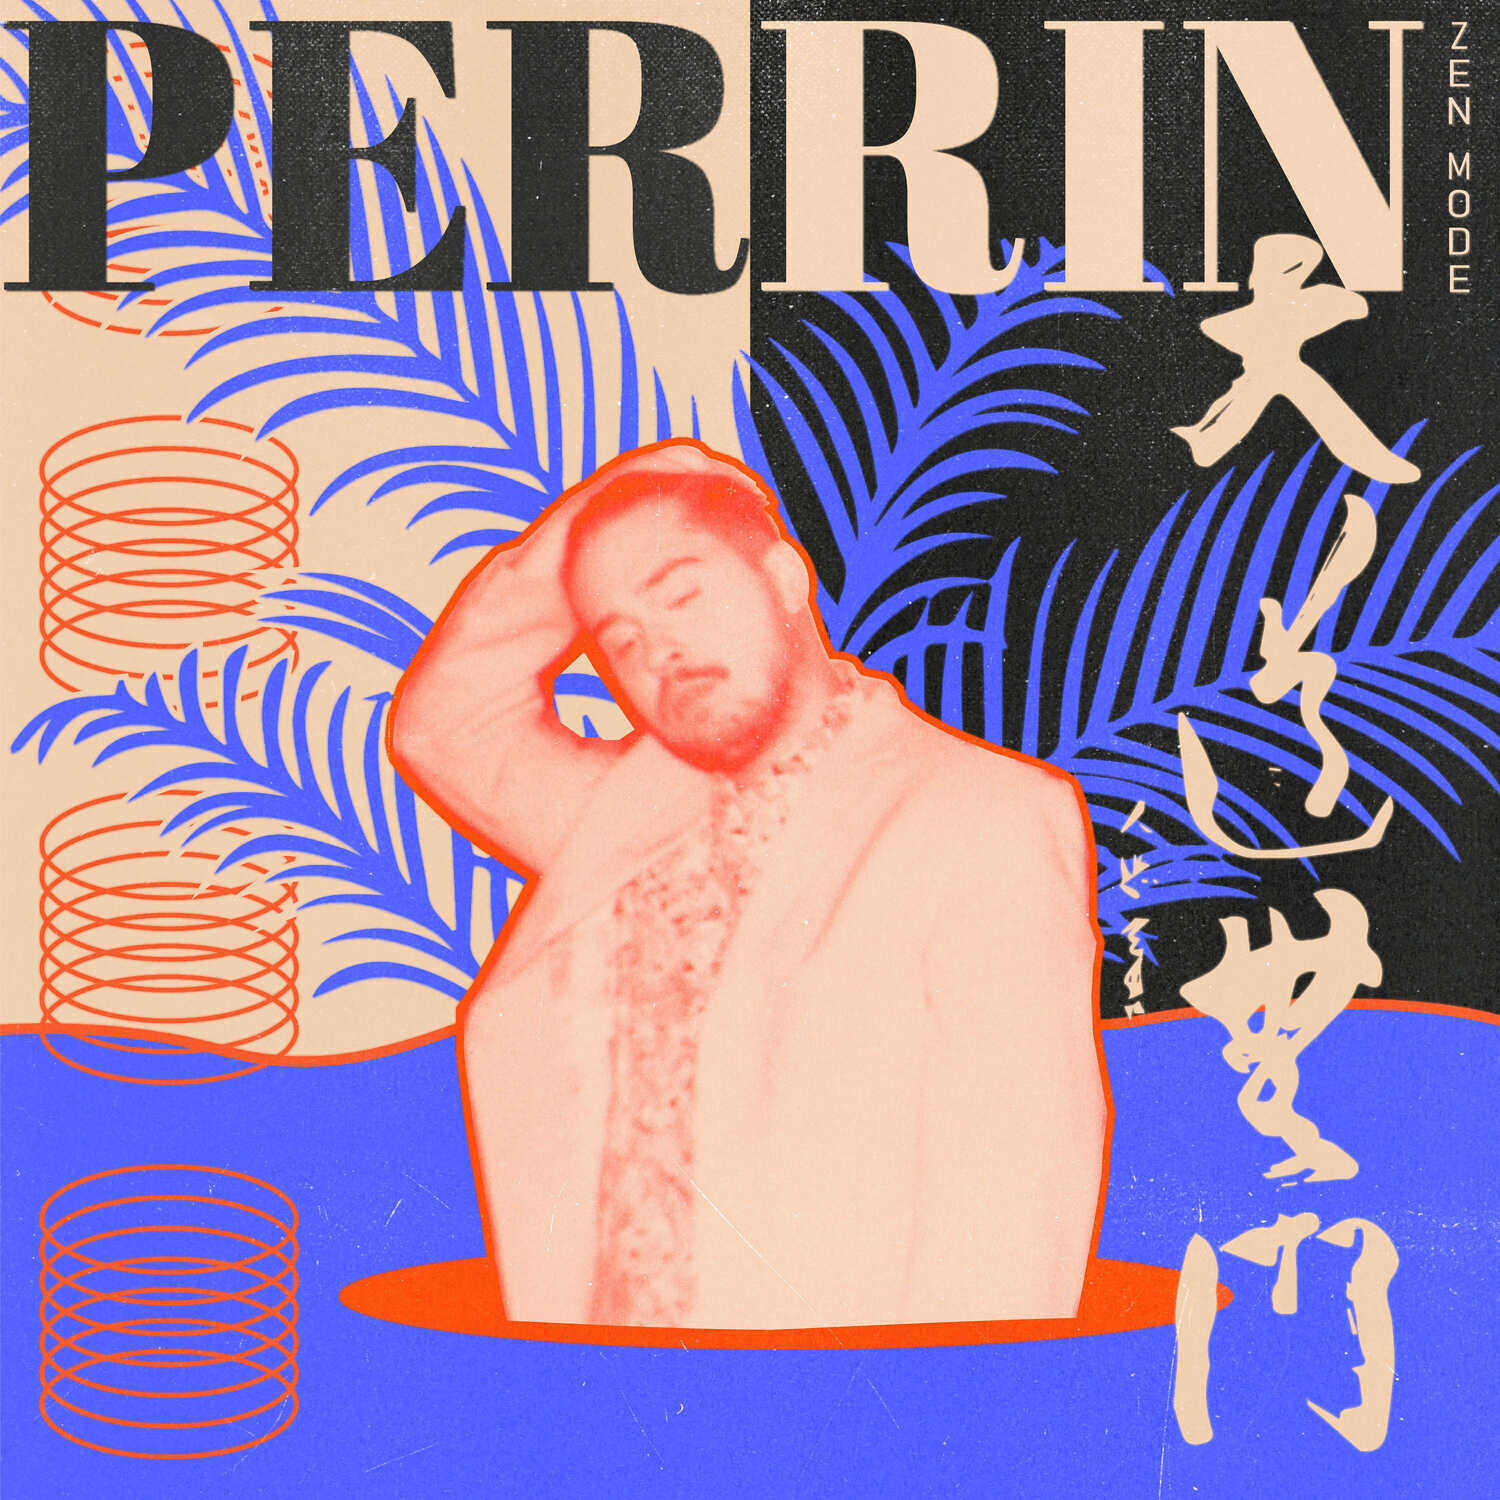 Perrin shares another smooth track called Zen Mode